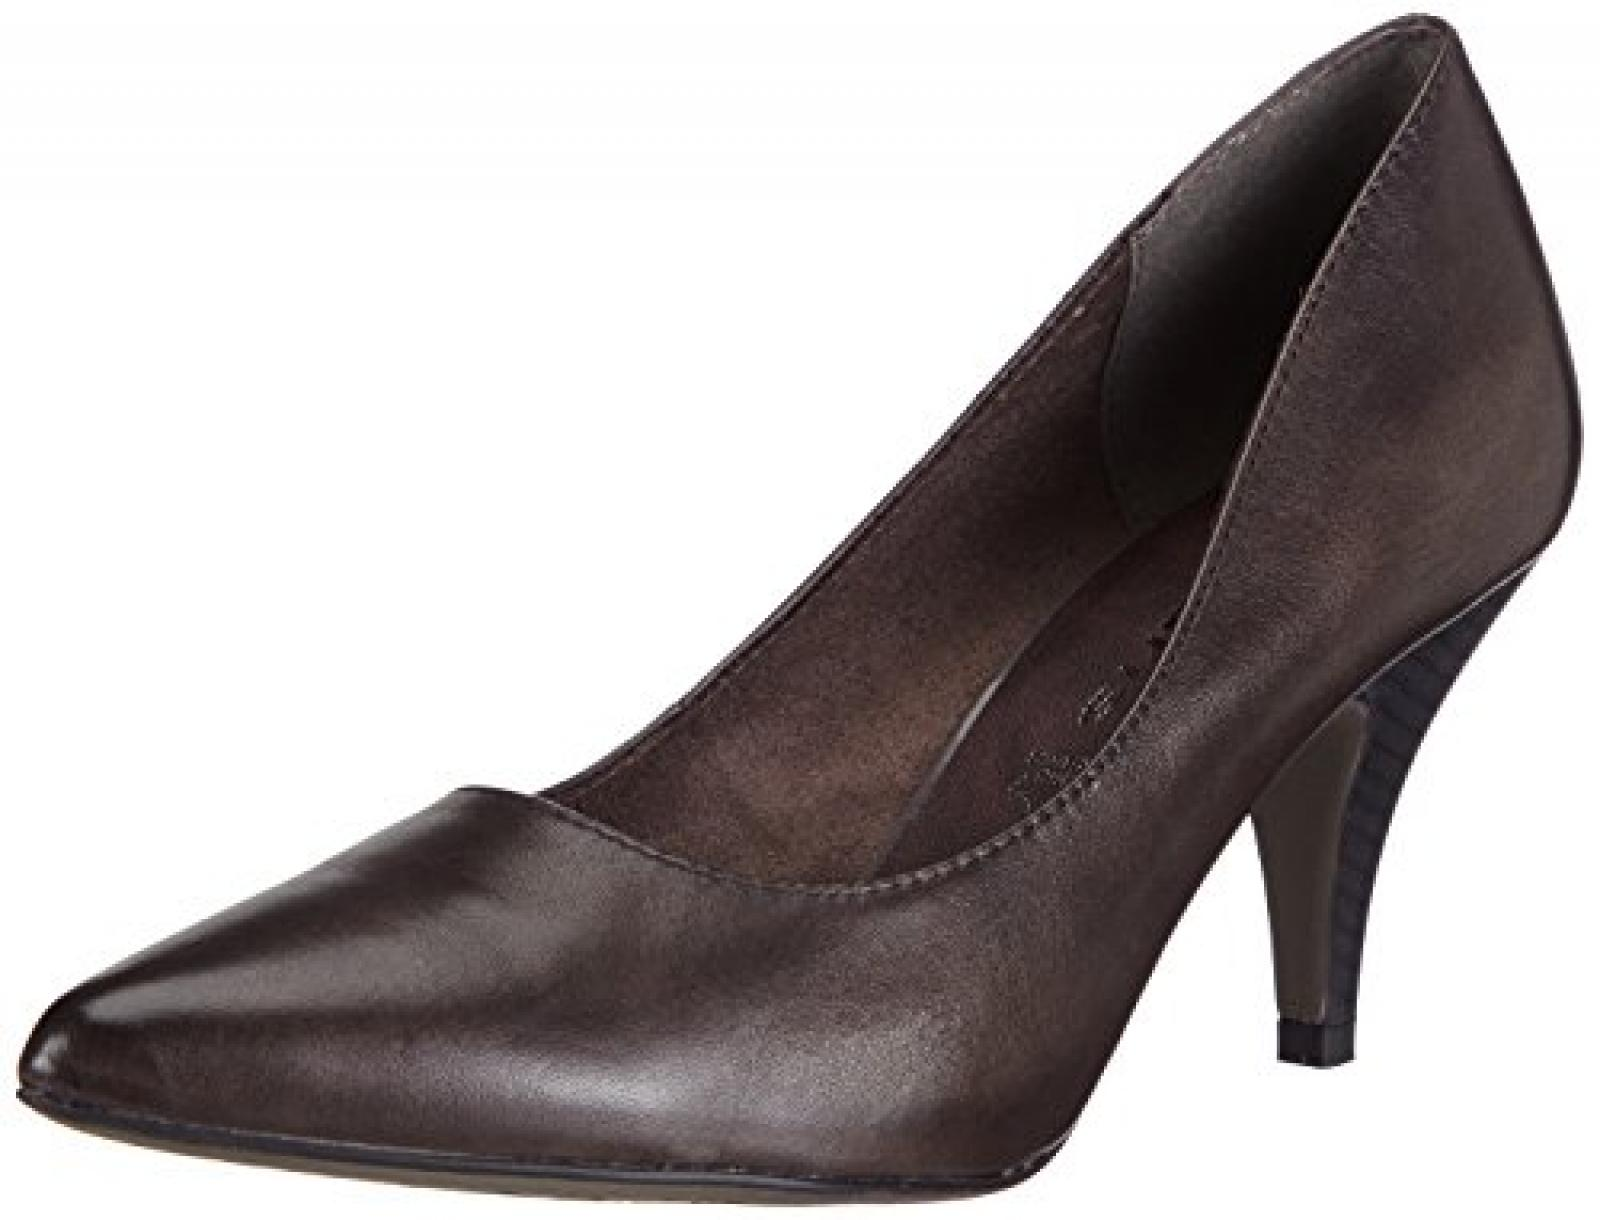 Tamaris 22423 Damen Plateau Pumps